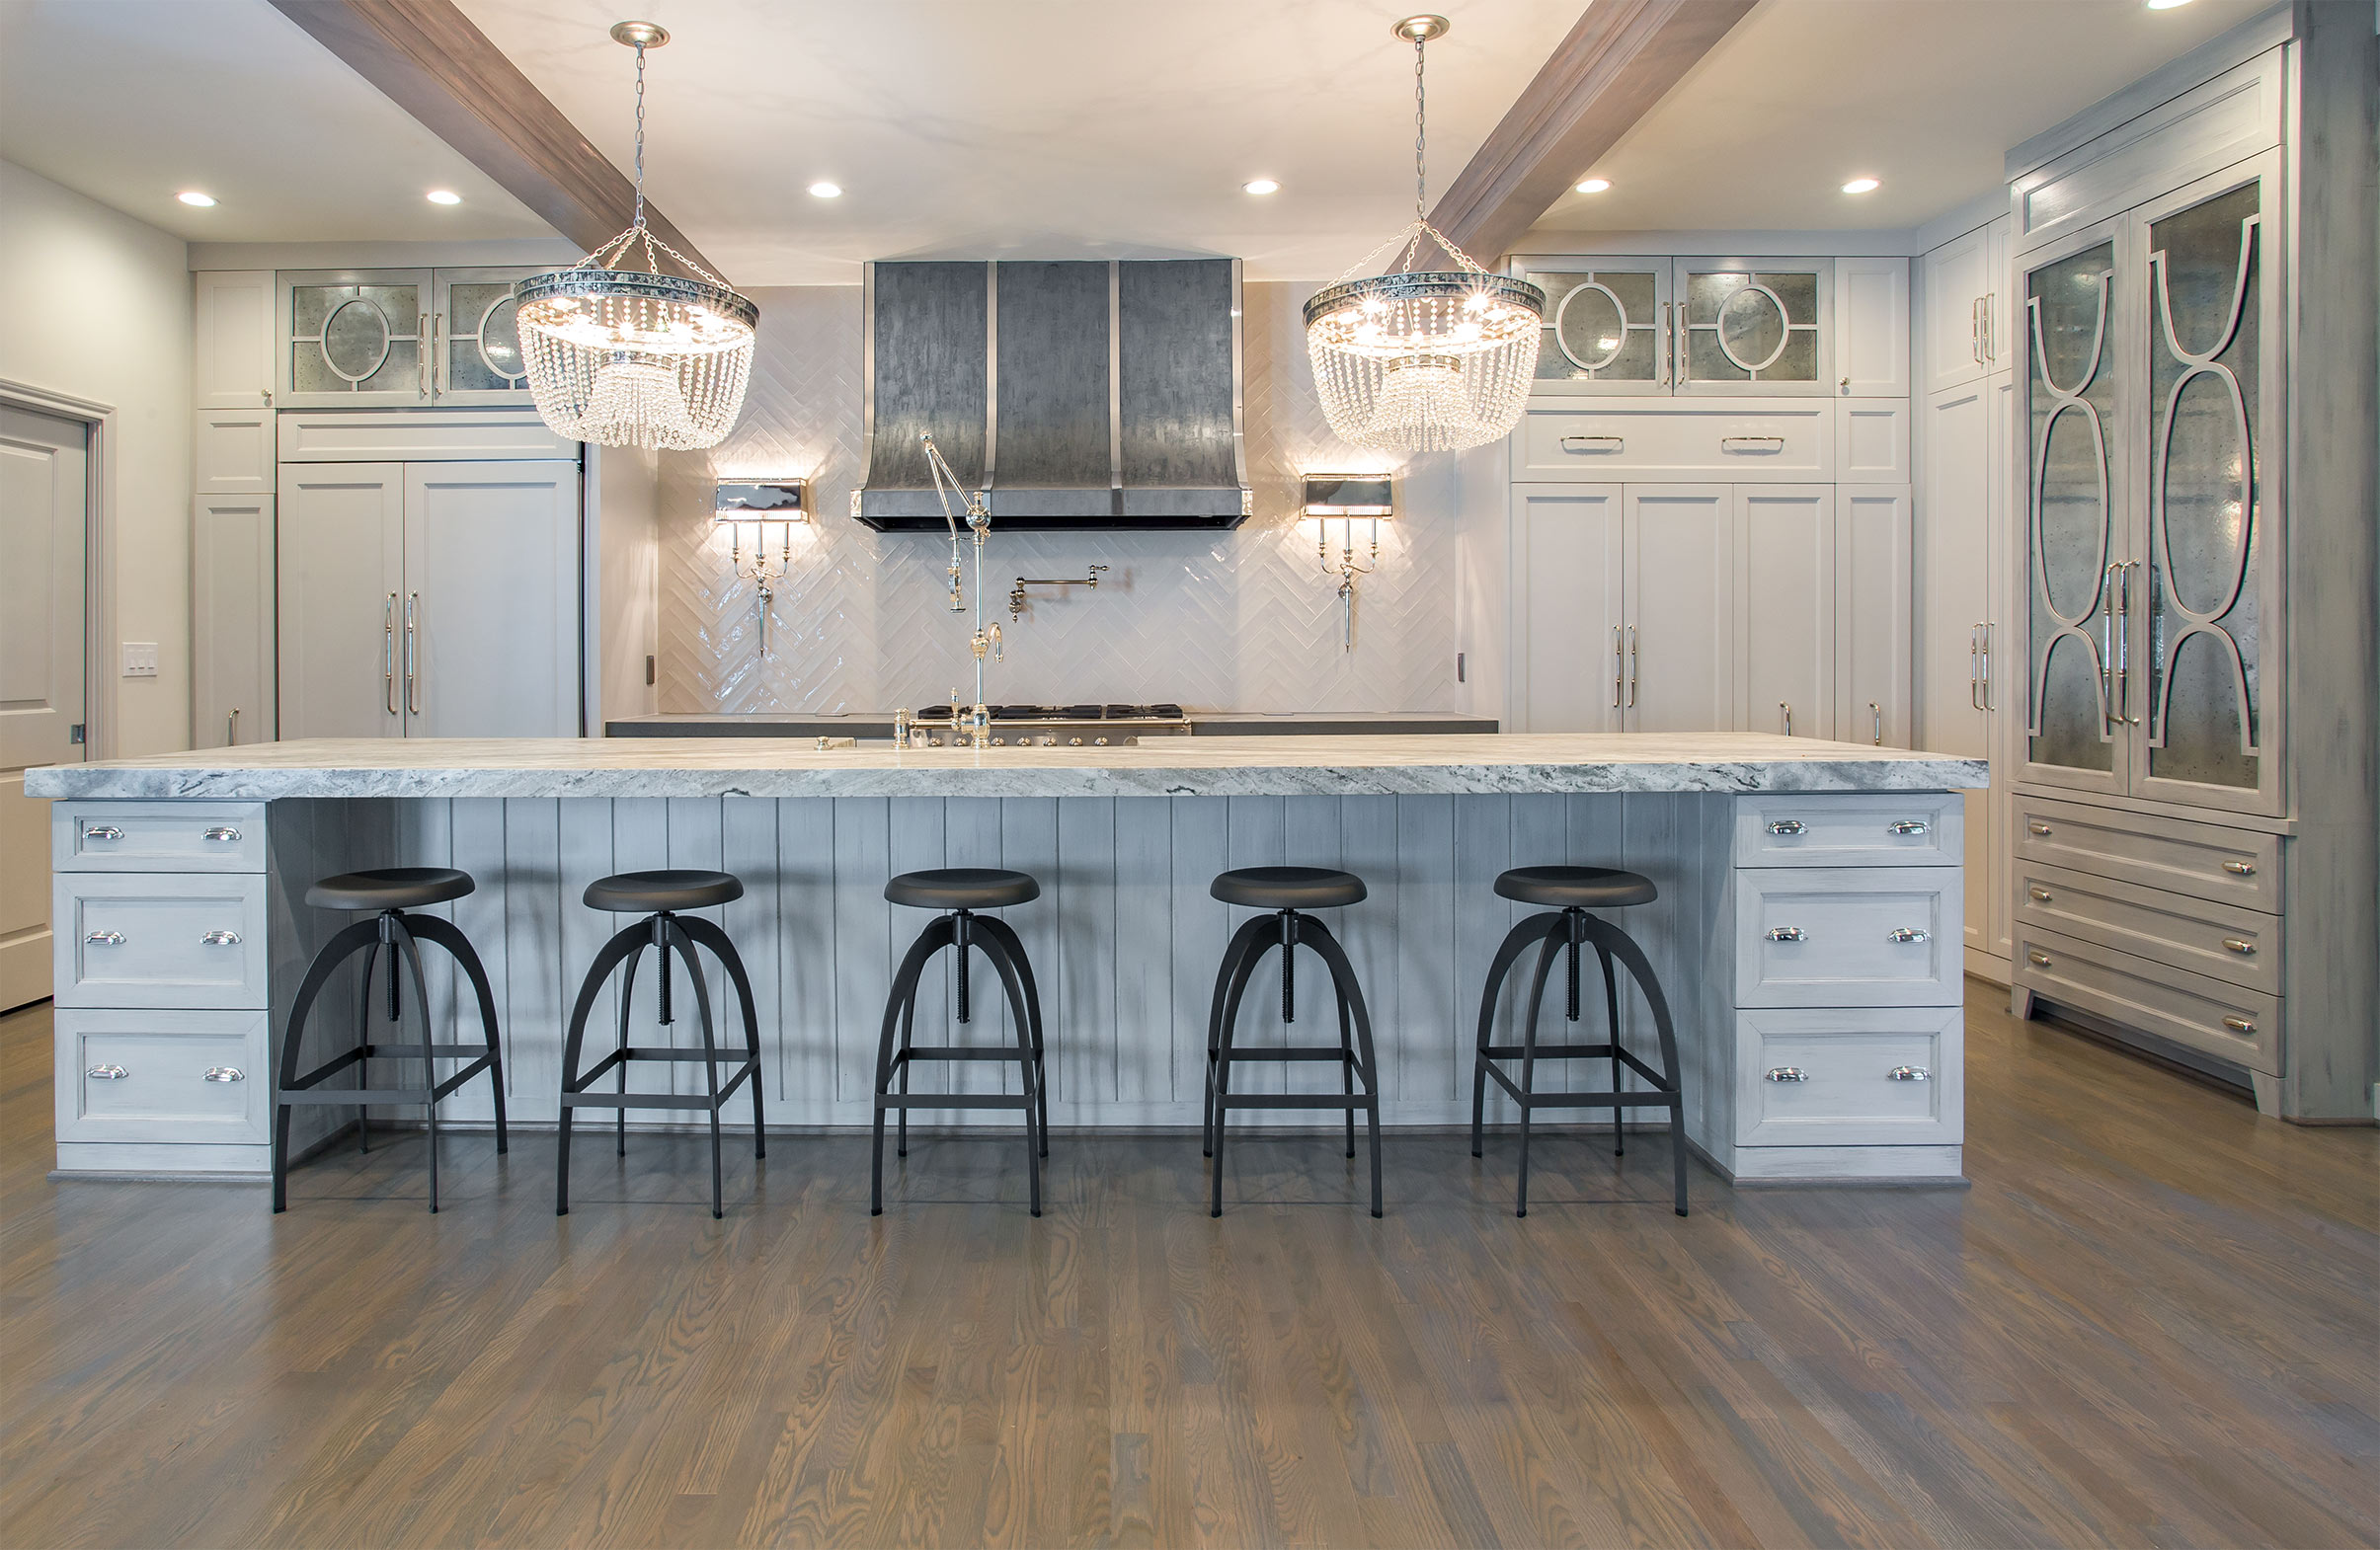 magnificently modern memorial kitchen remodel kitchen remodeling houston Magnificently Modern Memorial Kitchen Remodel